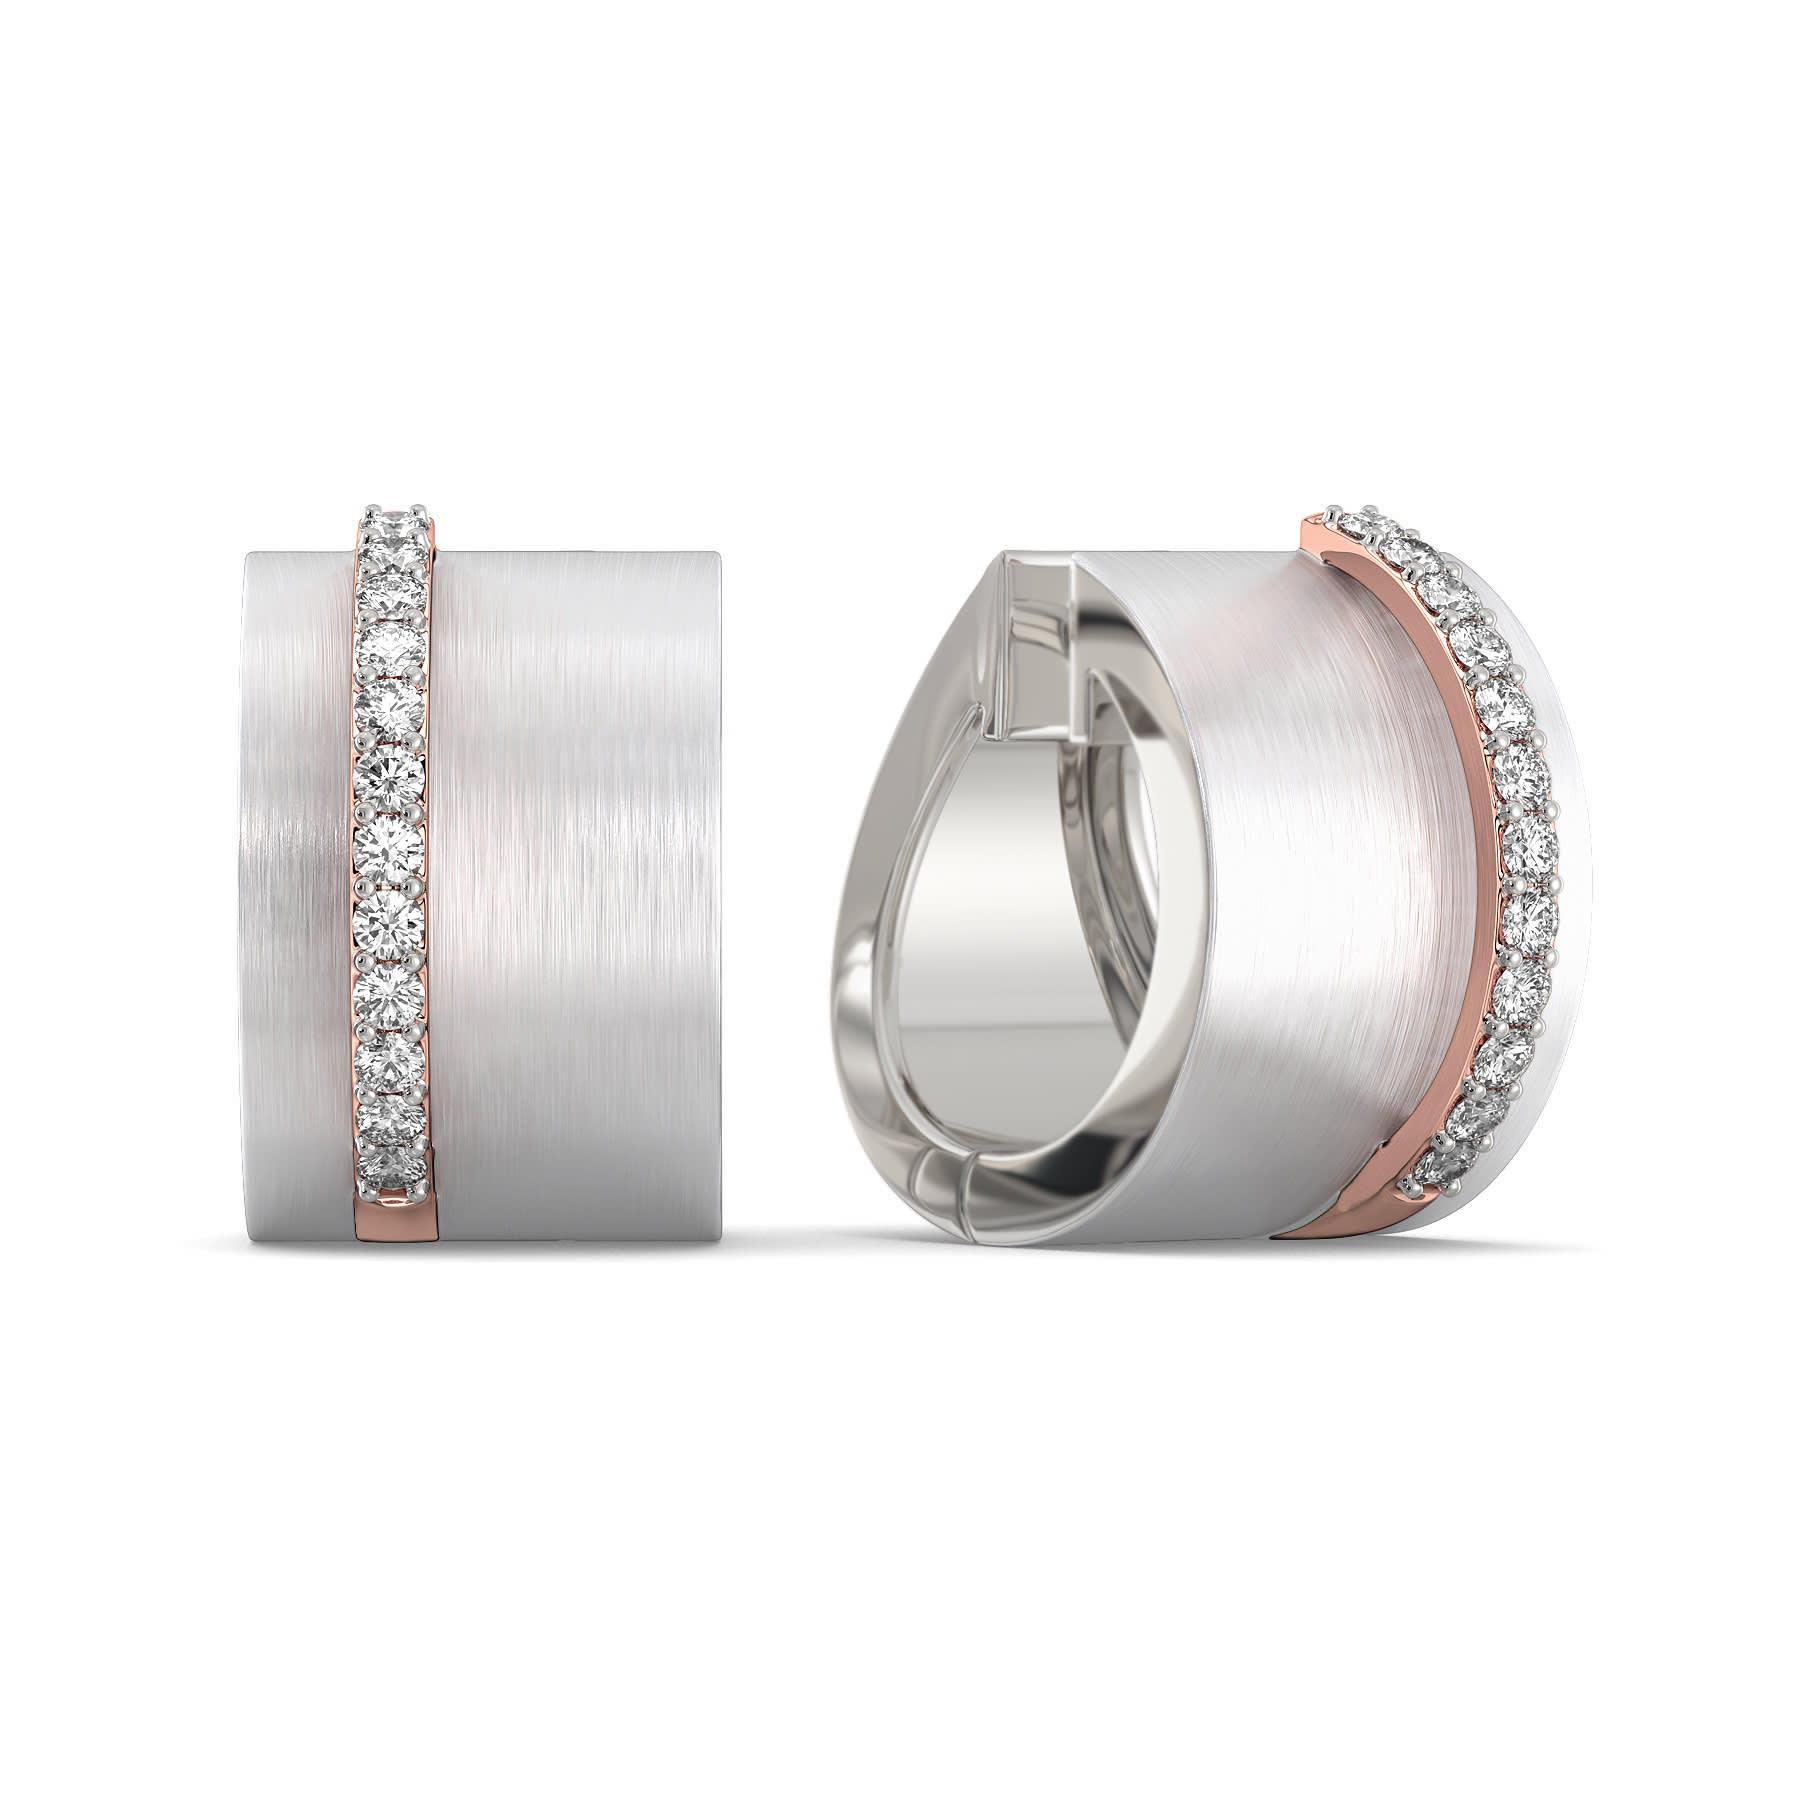 Frosted white Diamond Earrings